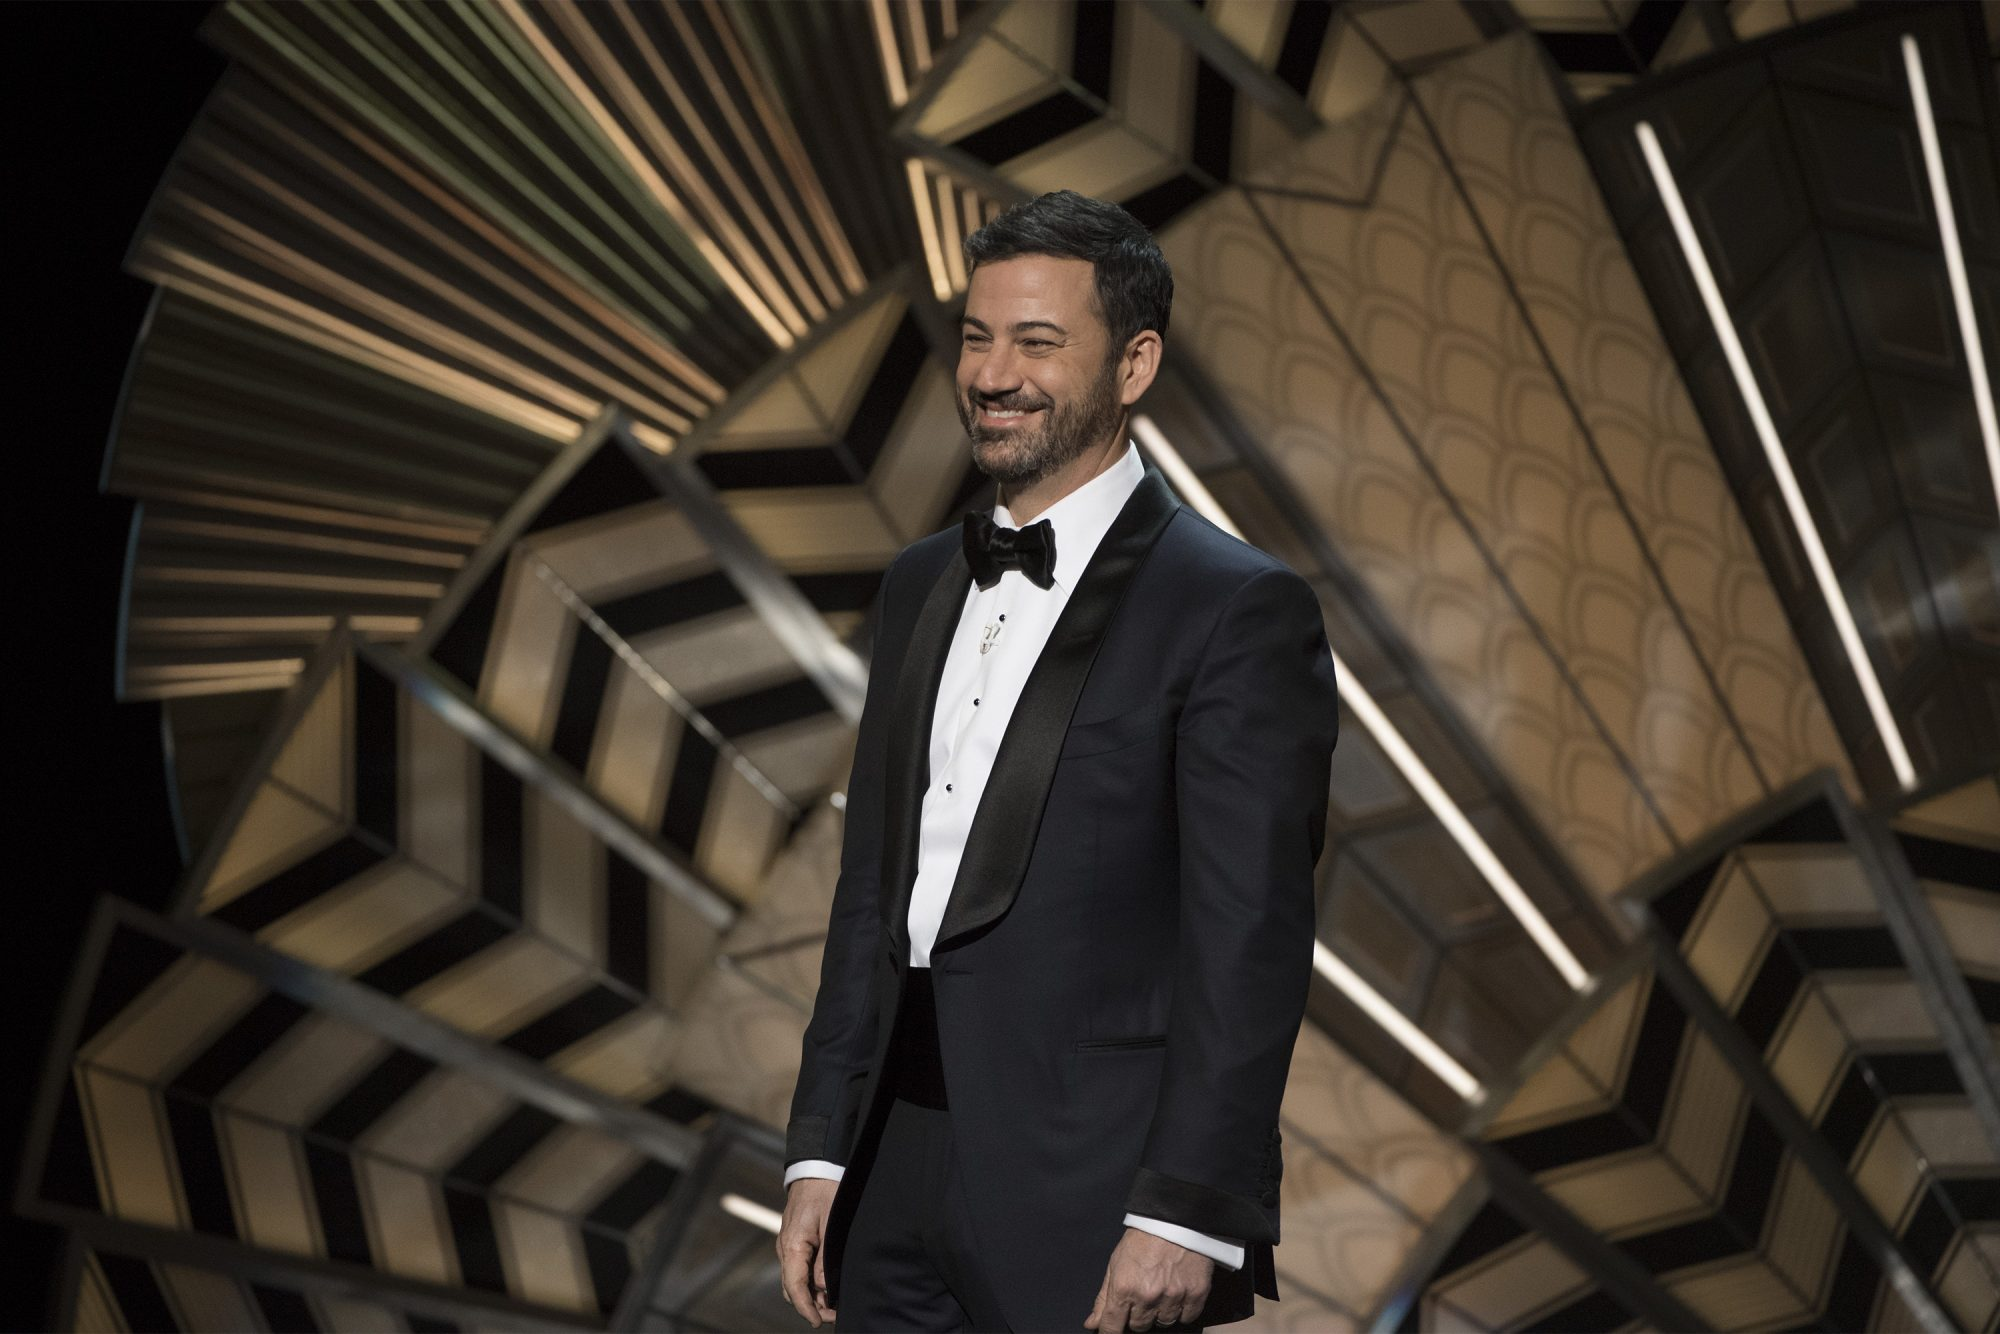 Jimmy Kimmel on stage for the 89th Oscars